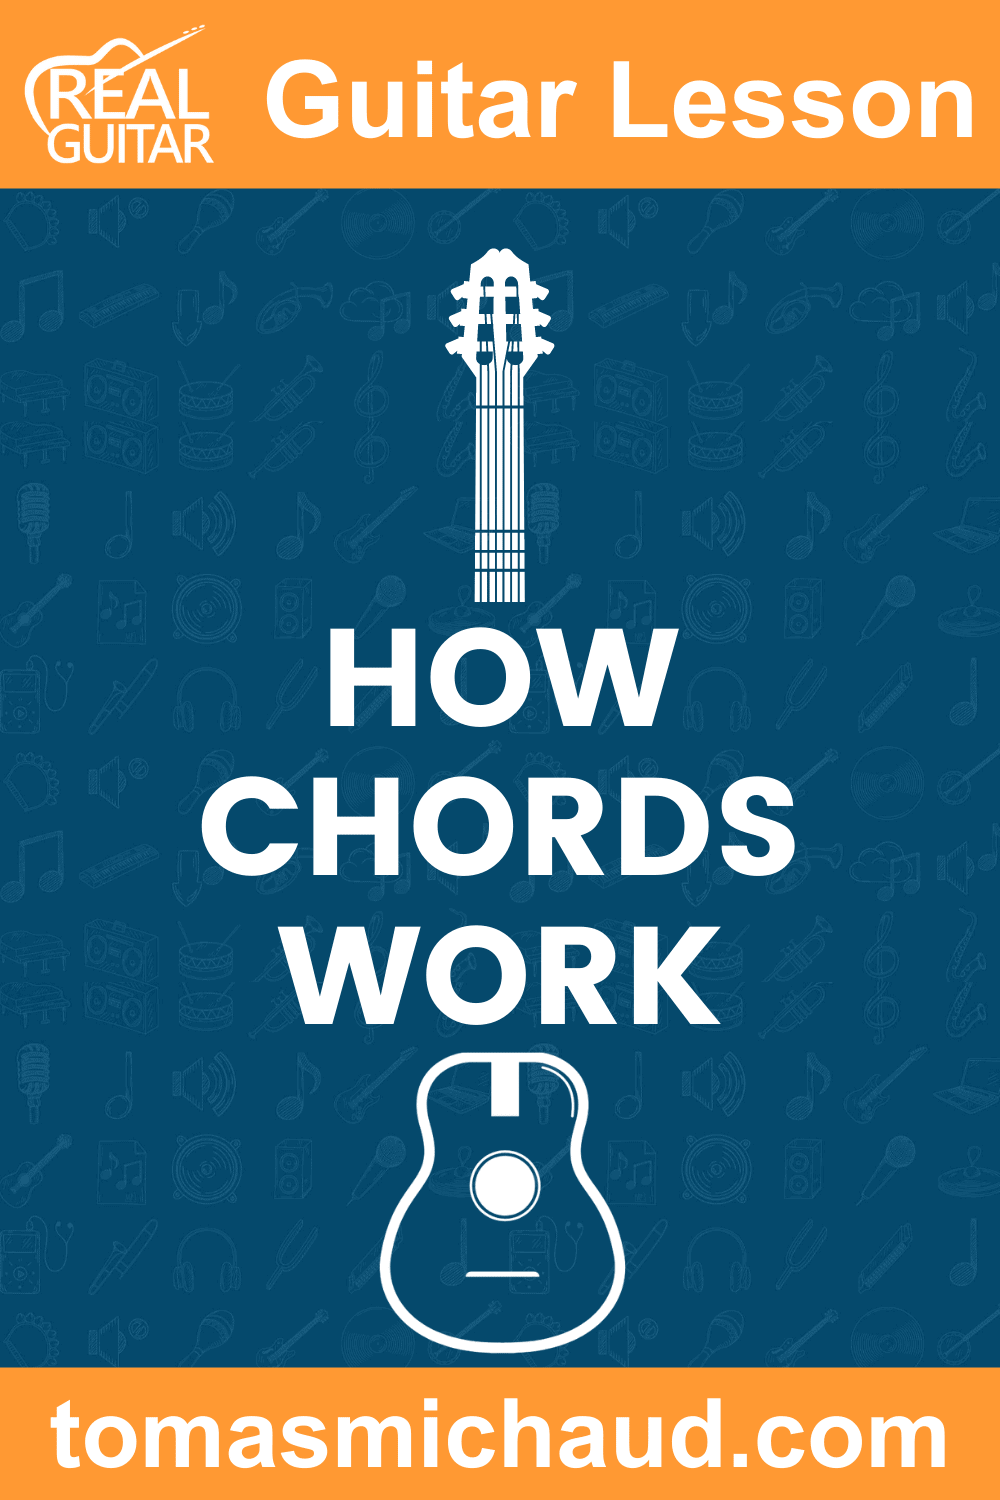 How Chords Work